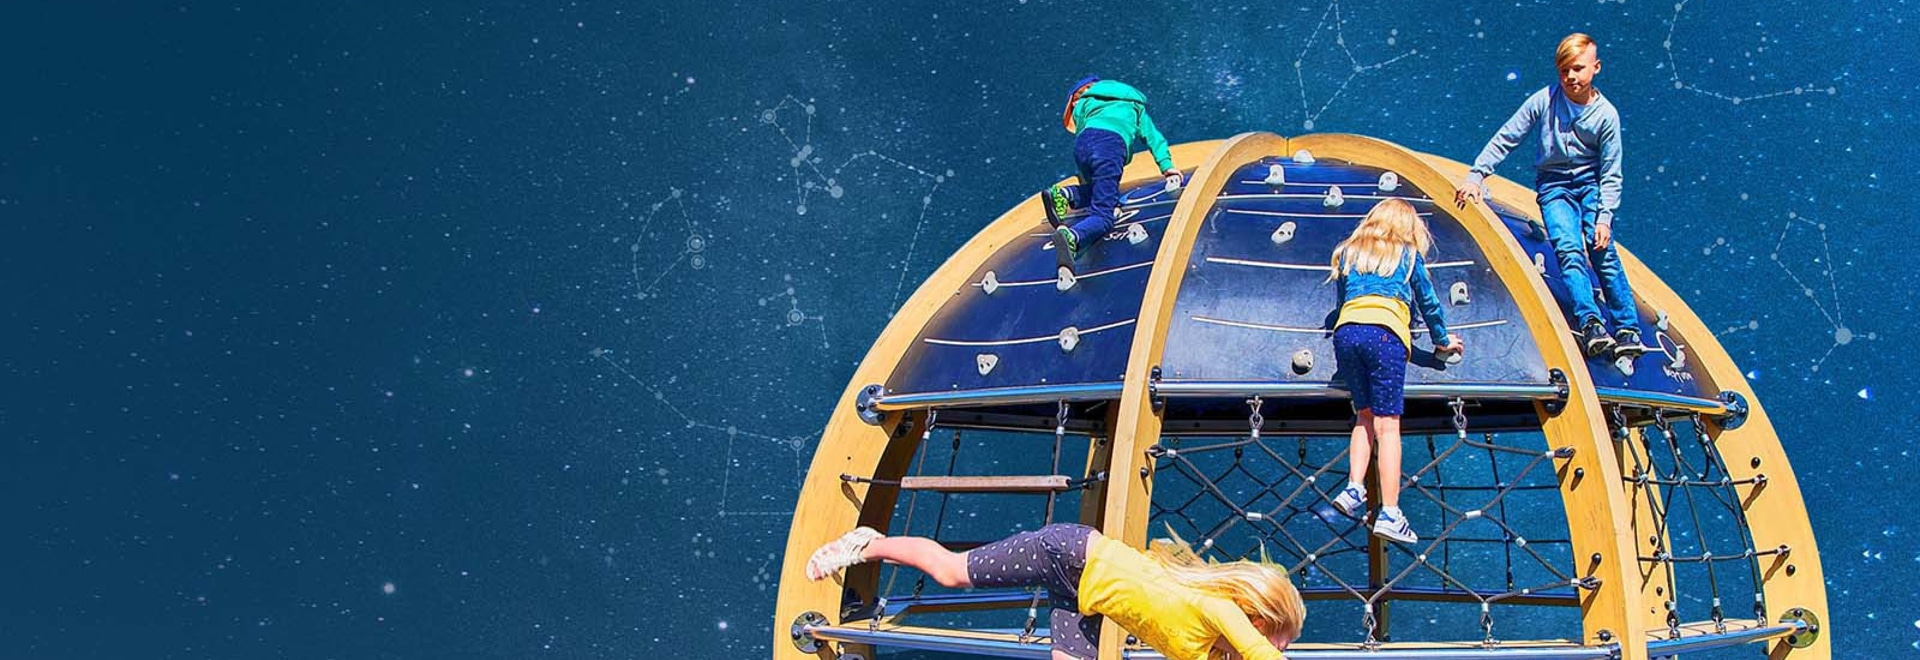 New! Play Planetarium is a unique play equipment and learning environment.